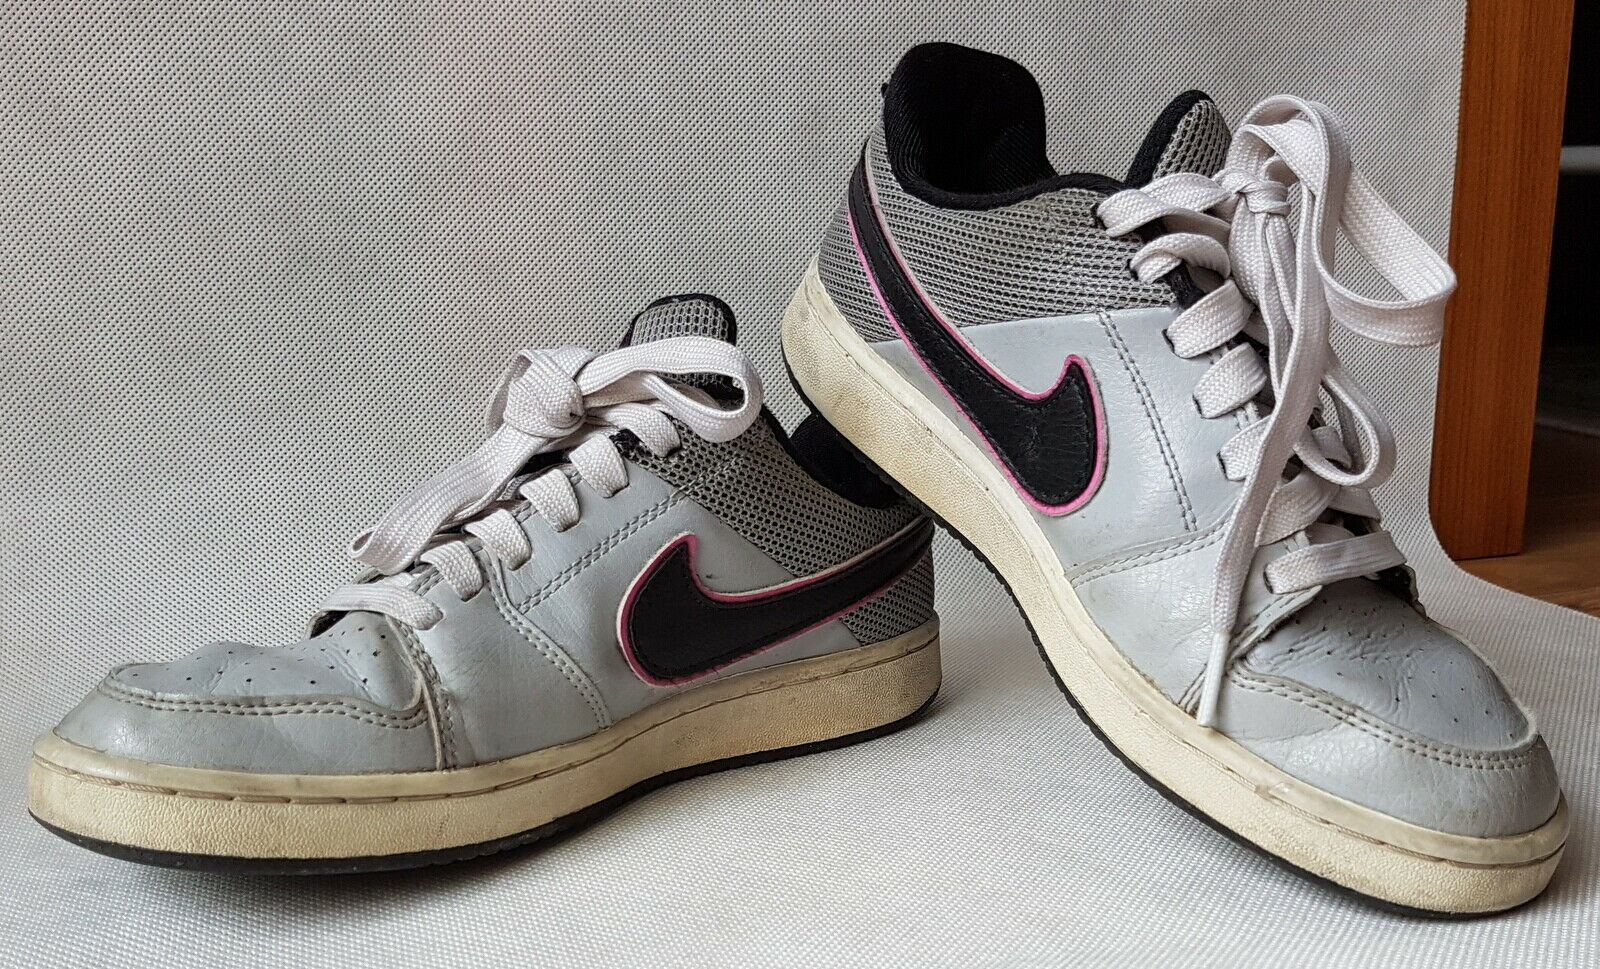 EUR36/UK3.5/23cm NIKE TRAINERS SPORTS SHOES MADE IN CHINA